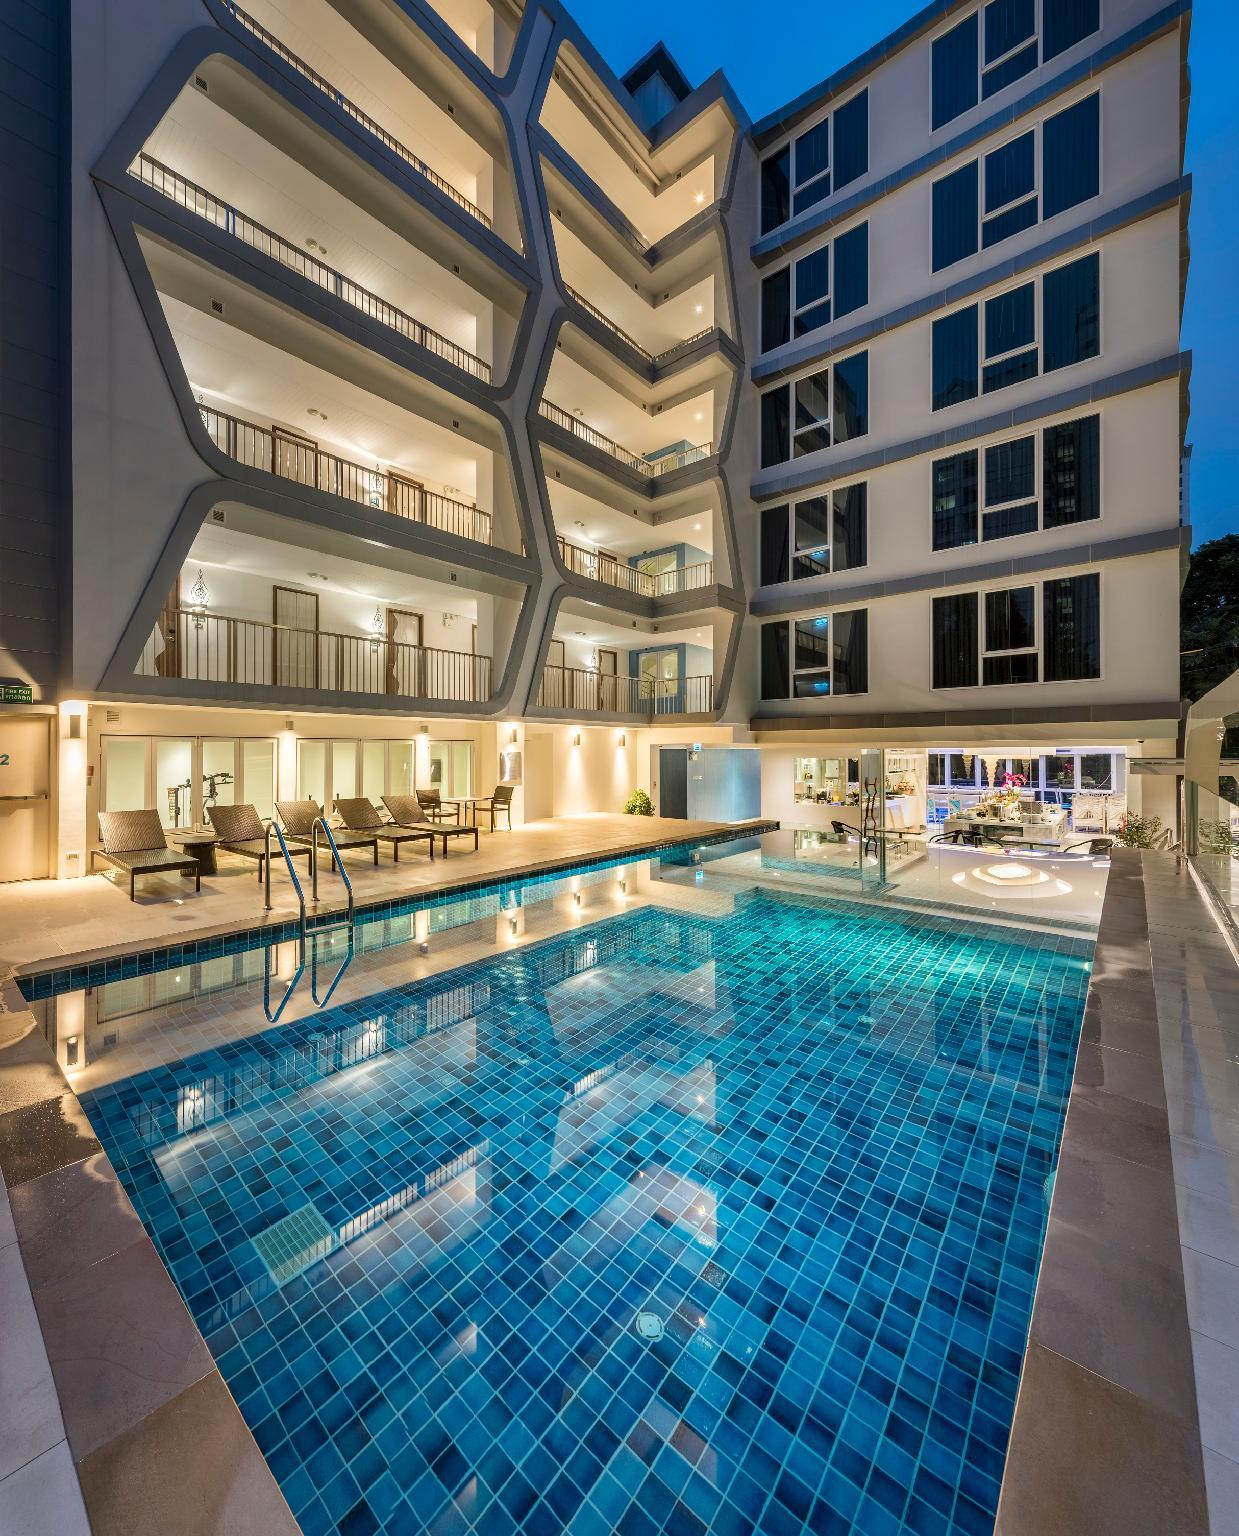 Best Price on Le Tada Parkview Hotel in Bangkok + Reviews!